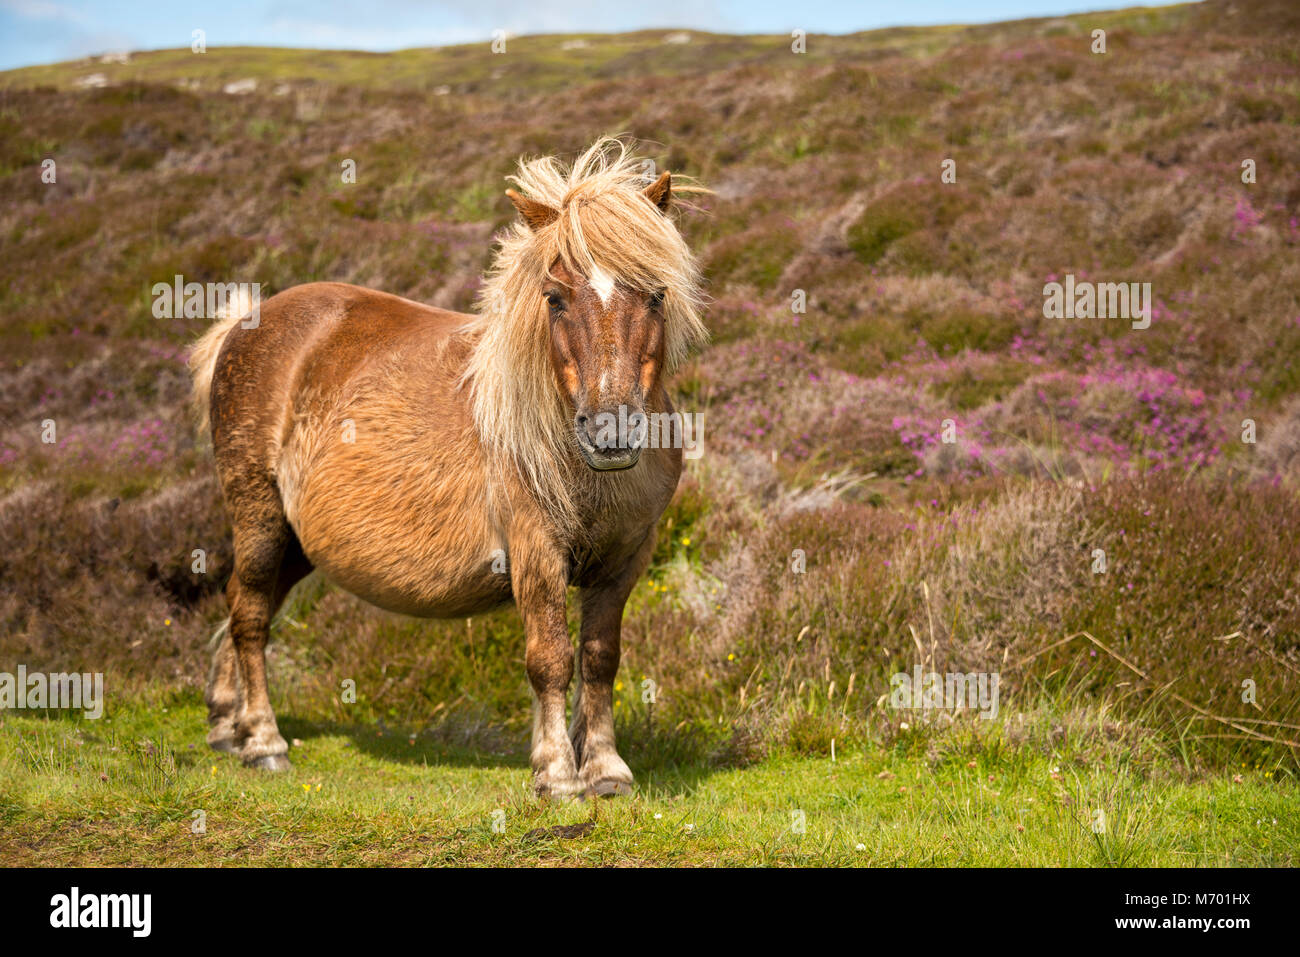 Poney Shetland South Uist Hébrides extérieures en Écosse Photo Stock